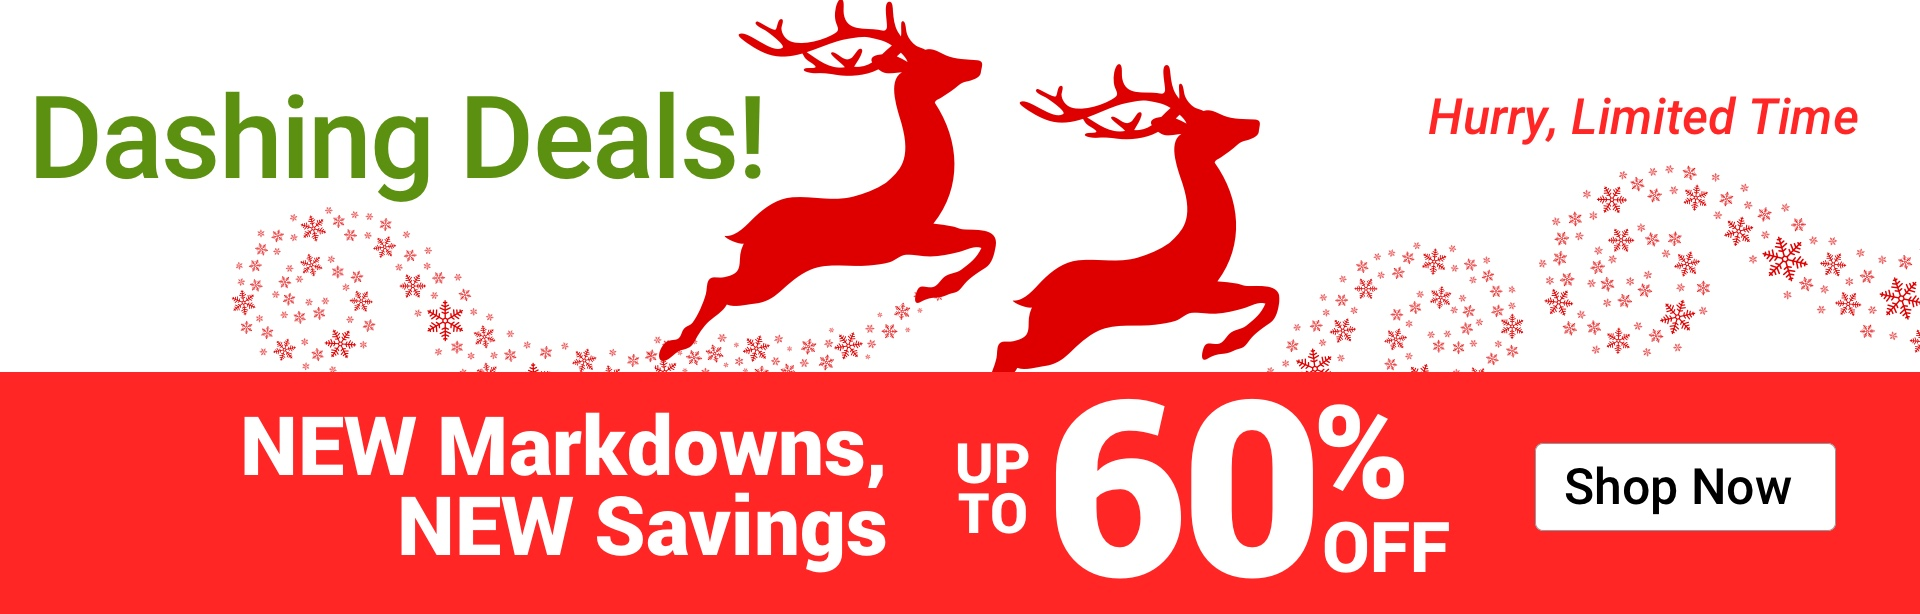 Dashing Deals. NEW Markdowns up to 60% OFF. Shop Now